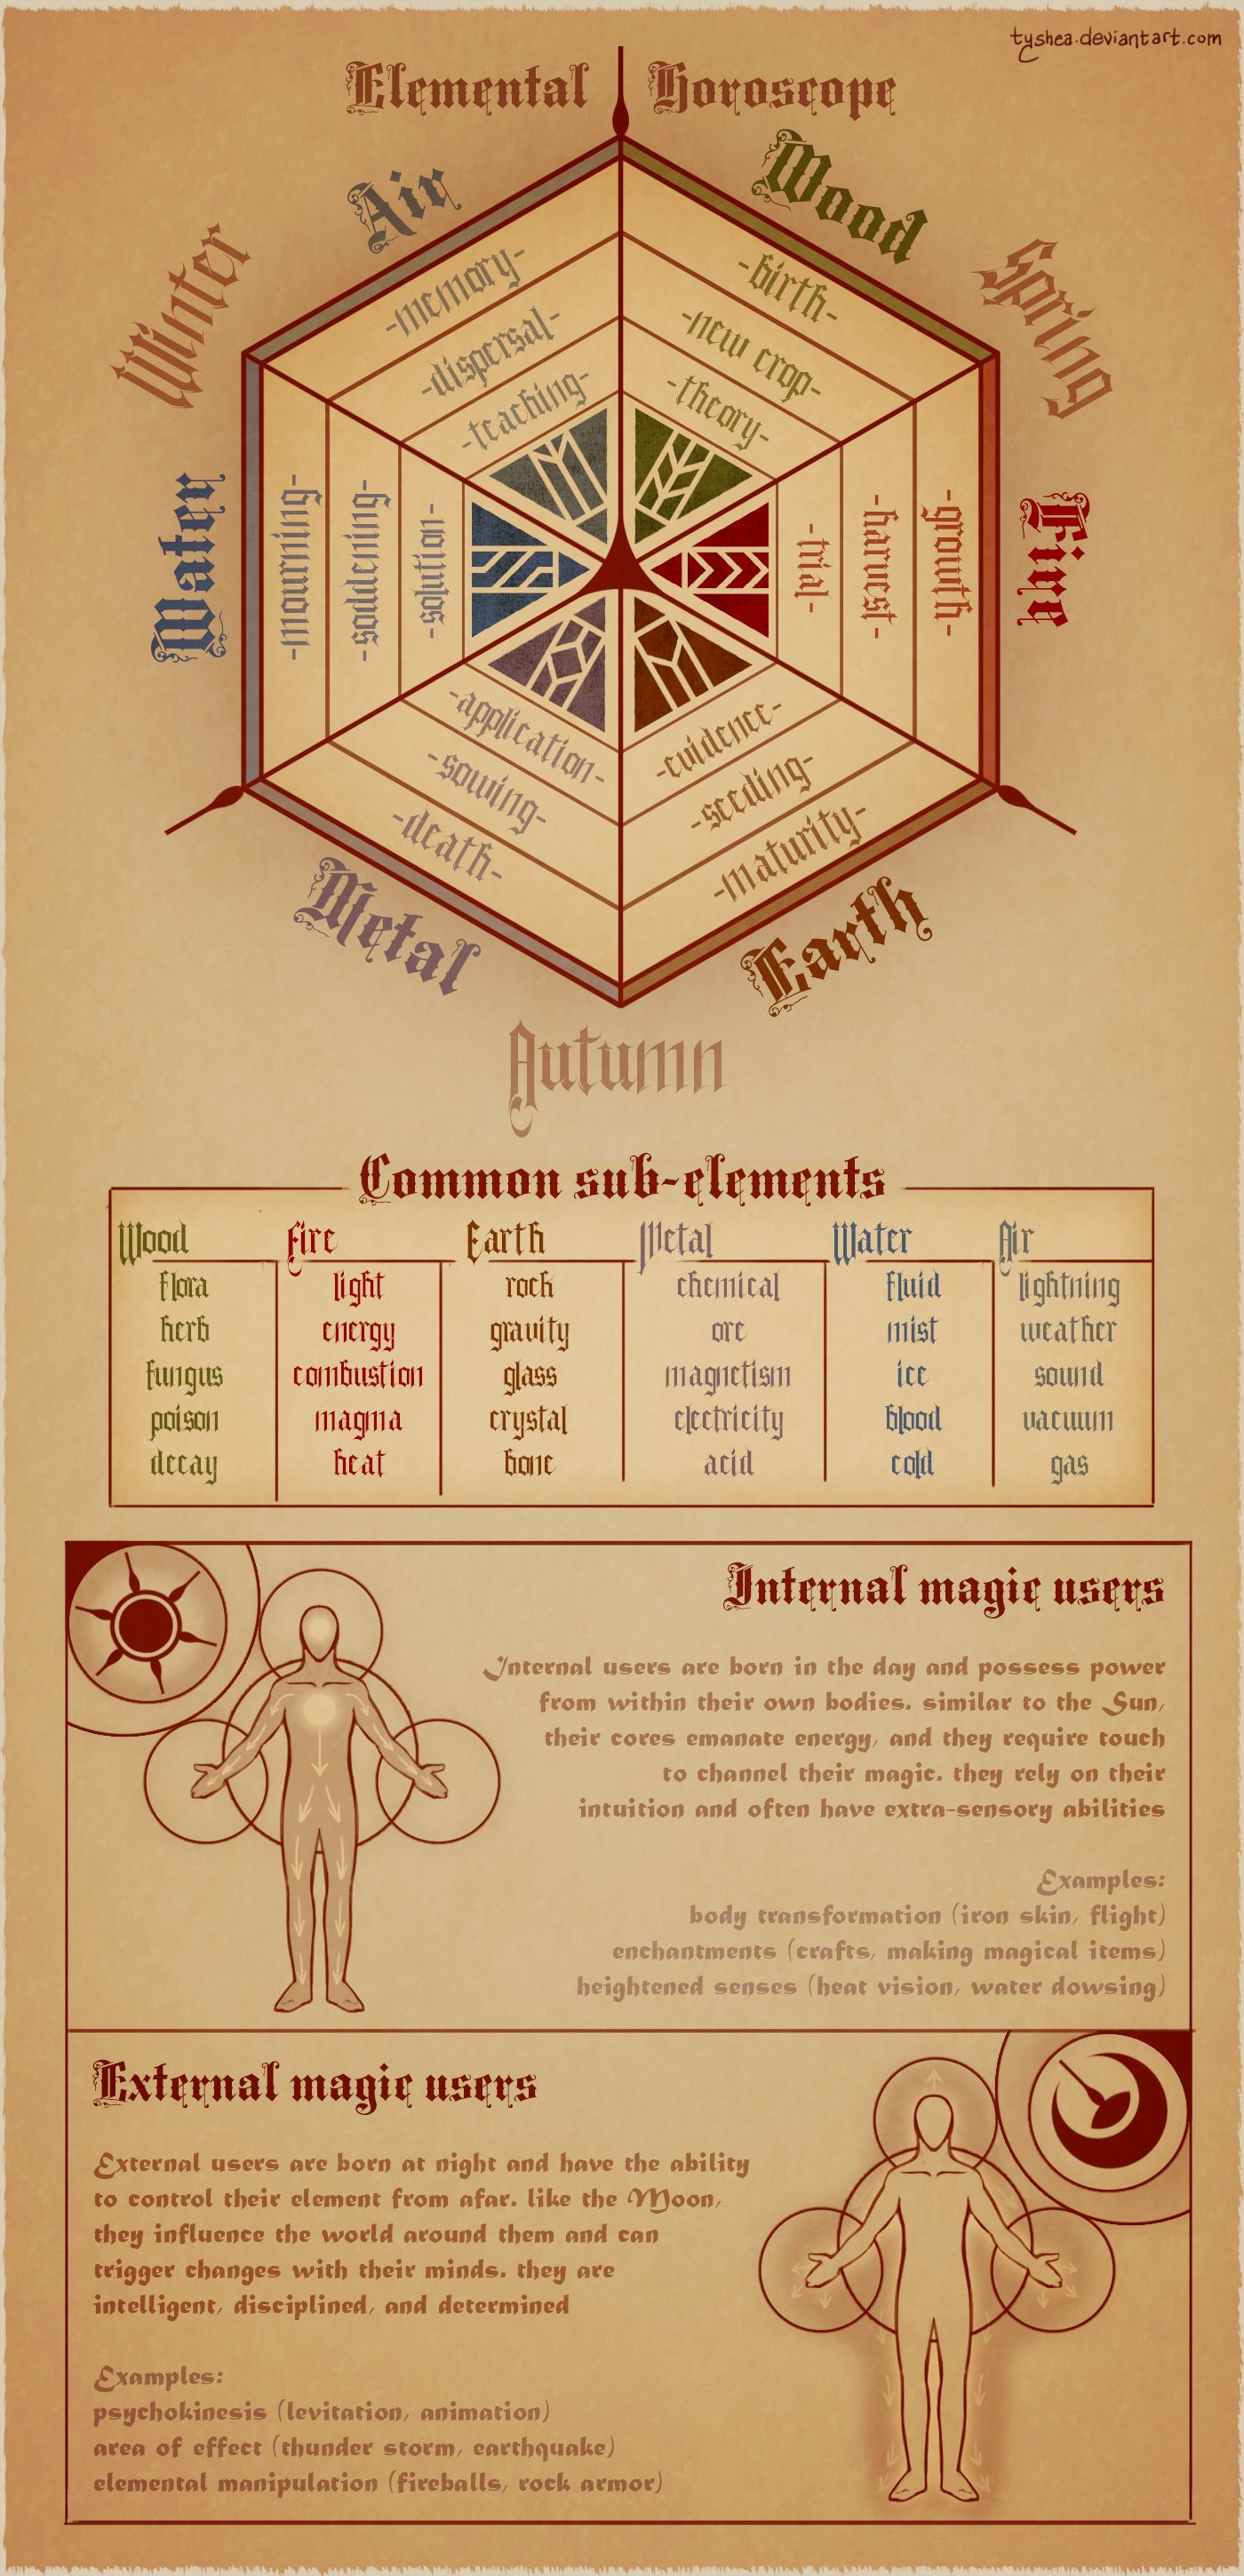 Magic calender by tyshea elemental horoscope elements wizard warlock witch sorcerer sorceress chart create your own roleplaying game material  rpg bard also rh pinterest